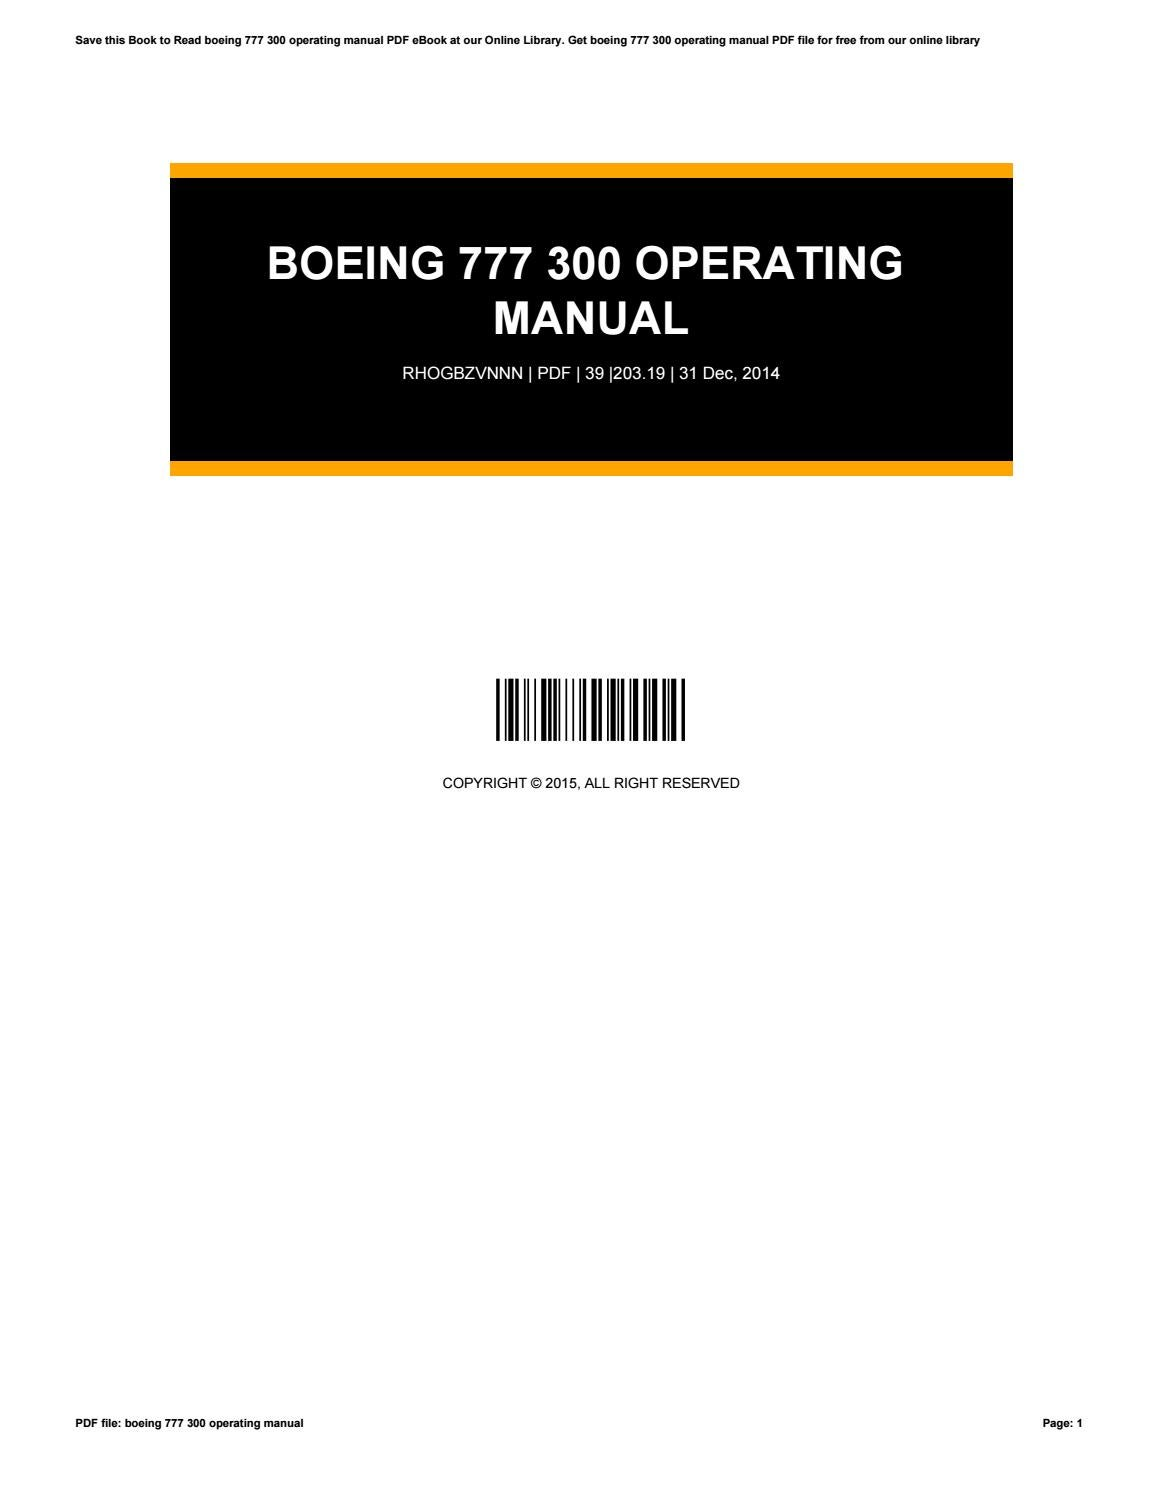 boeing 777 manual download ebook